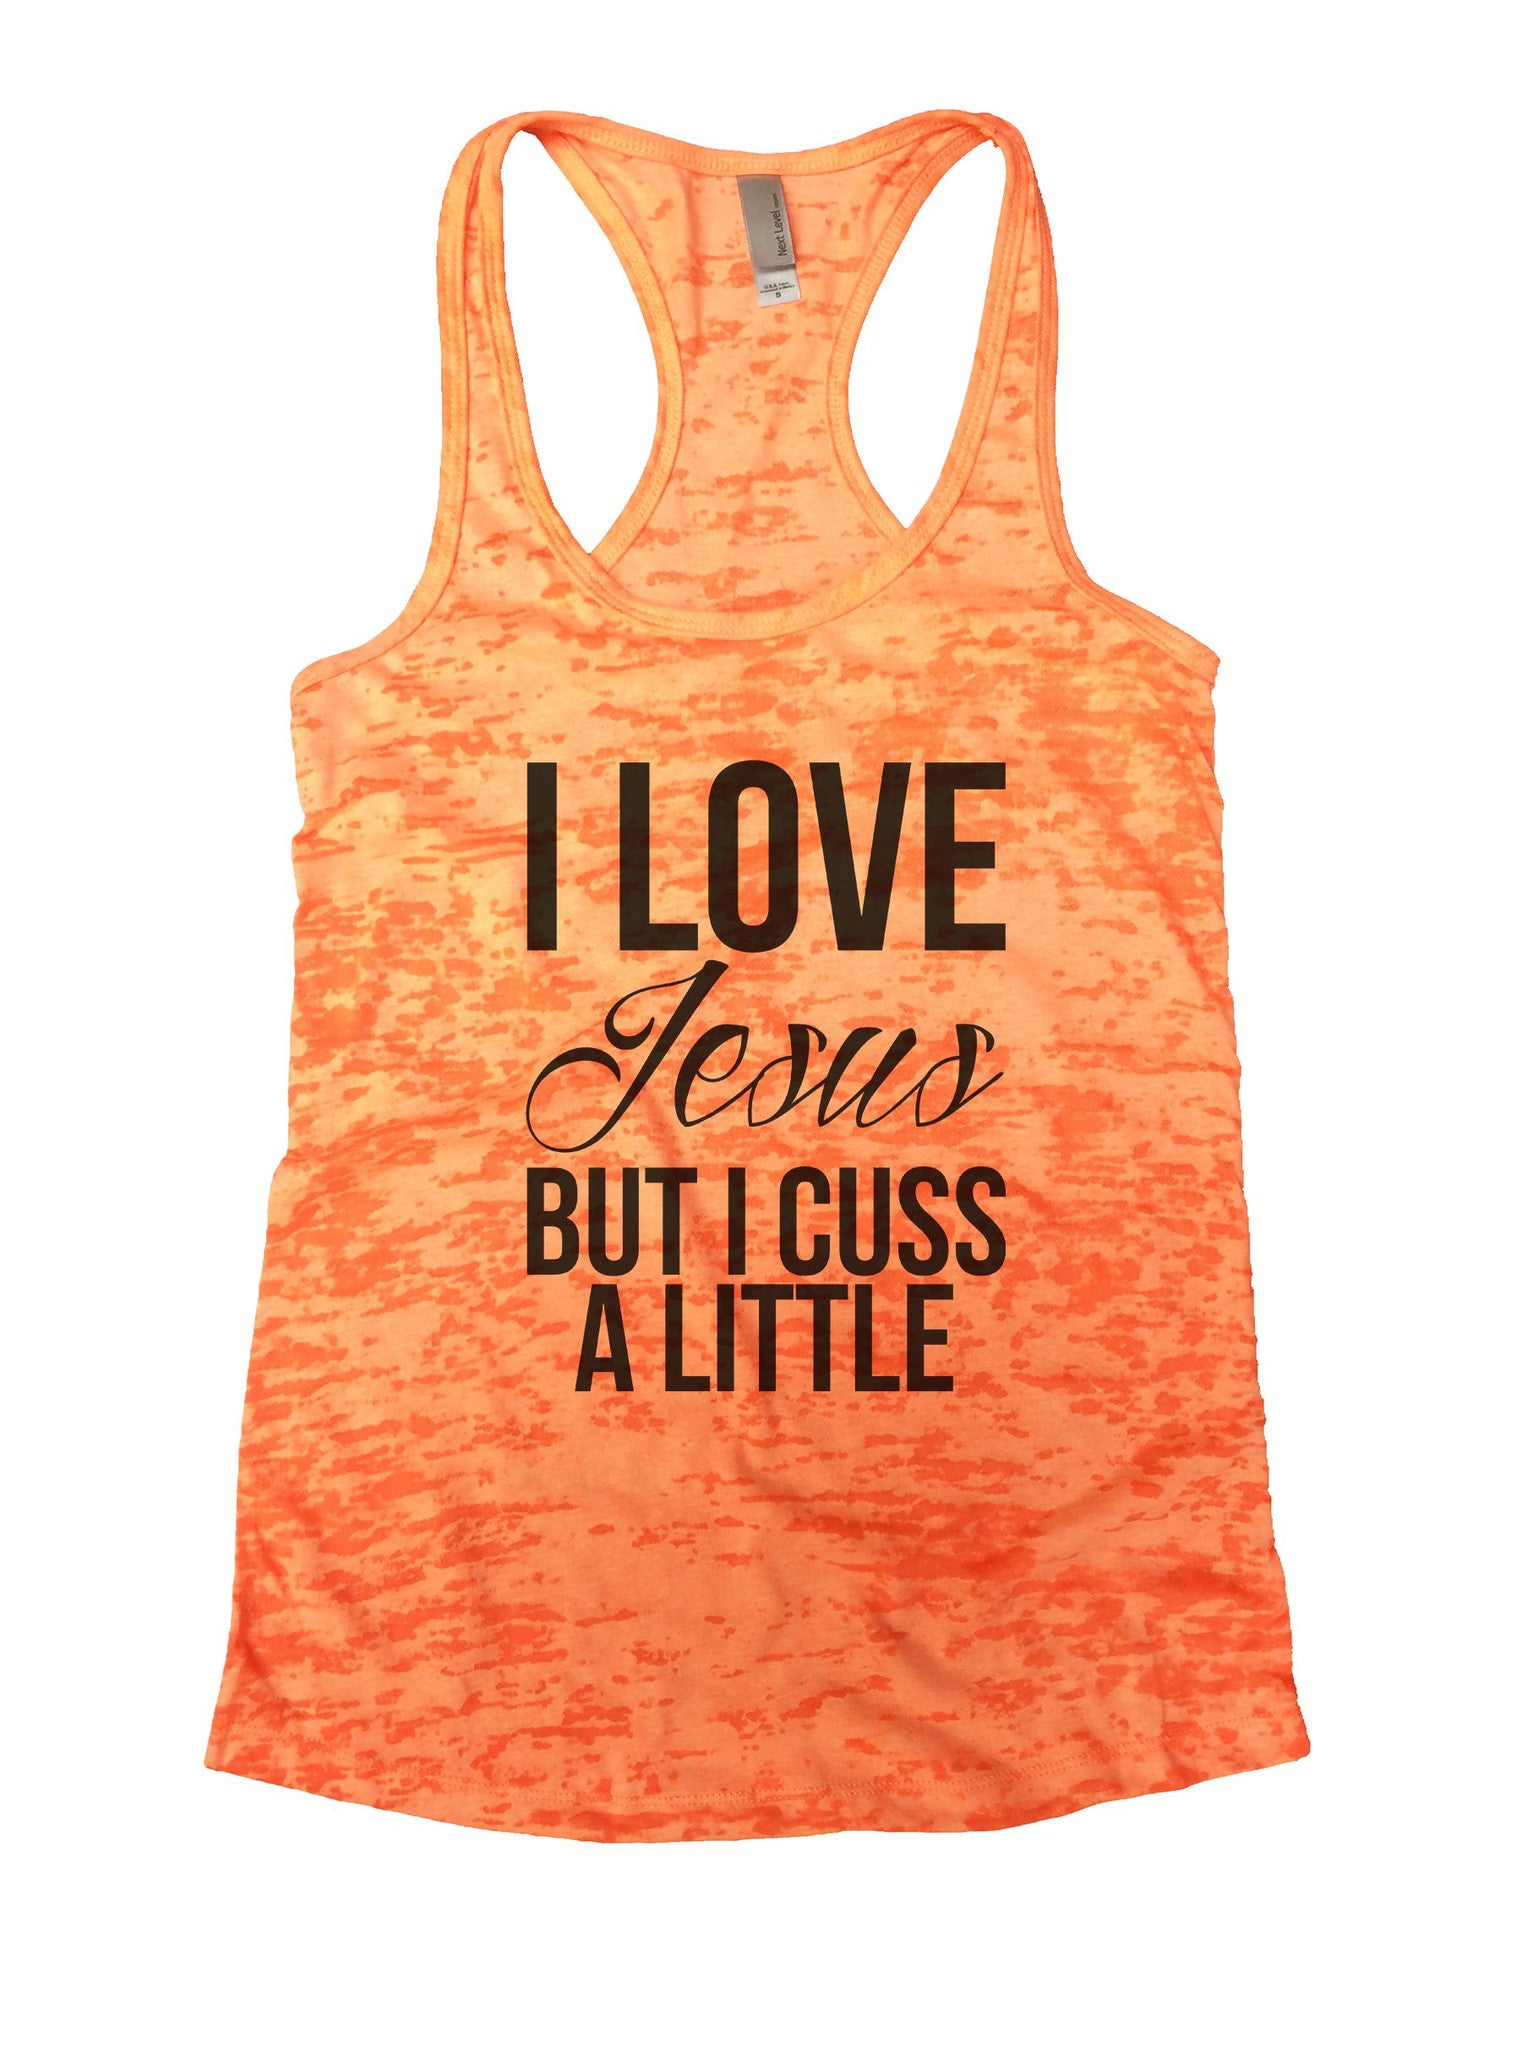 I Love Jesus But I Cuss A Little Burnout Tank Top By BurnoutTankTops.com - 1130 - Funny Shirts Tank Tops Burnouts and Triblends  - 4